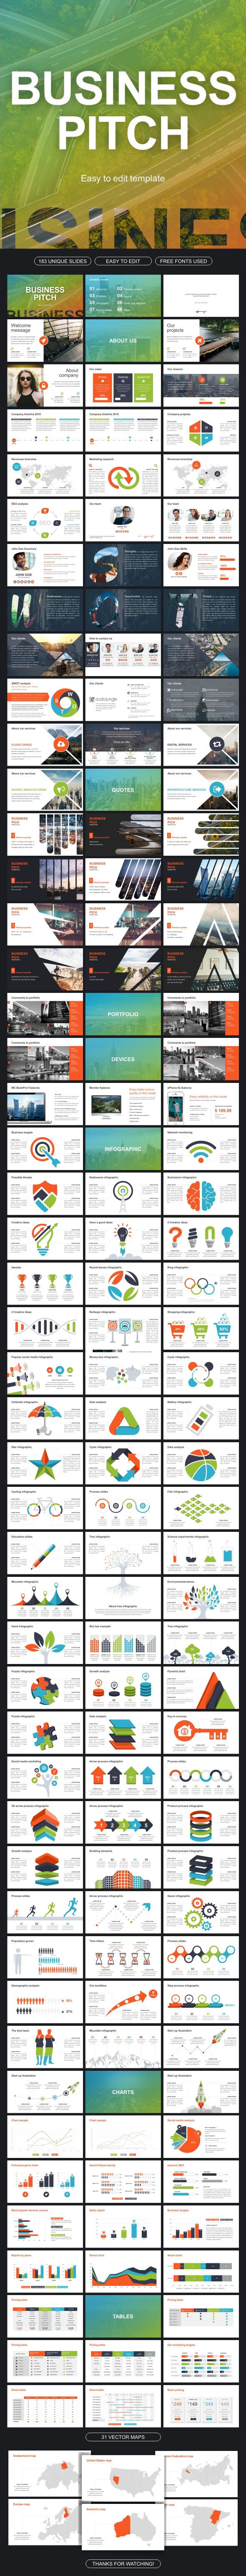 Business Pitch Keynote - Business Keynote Templates